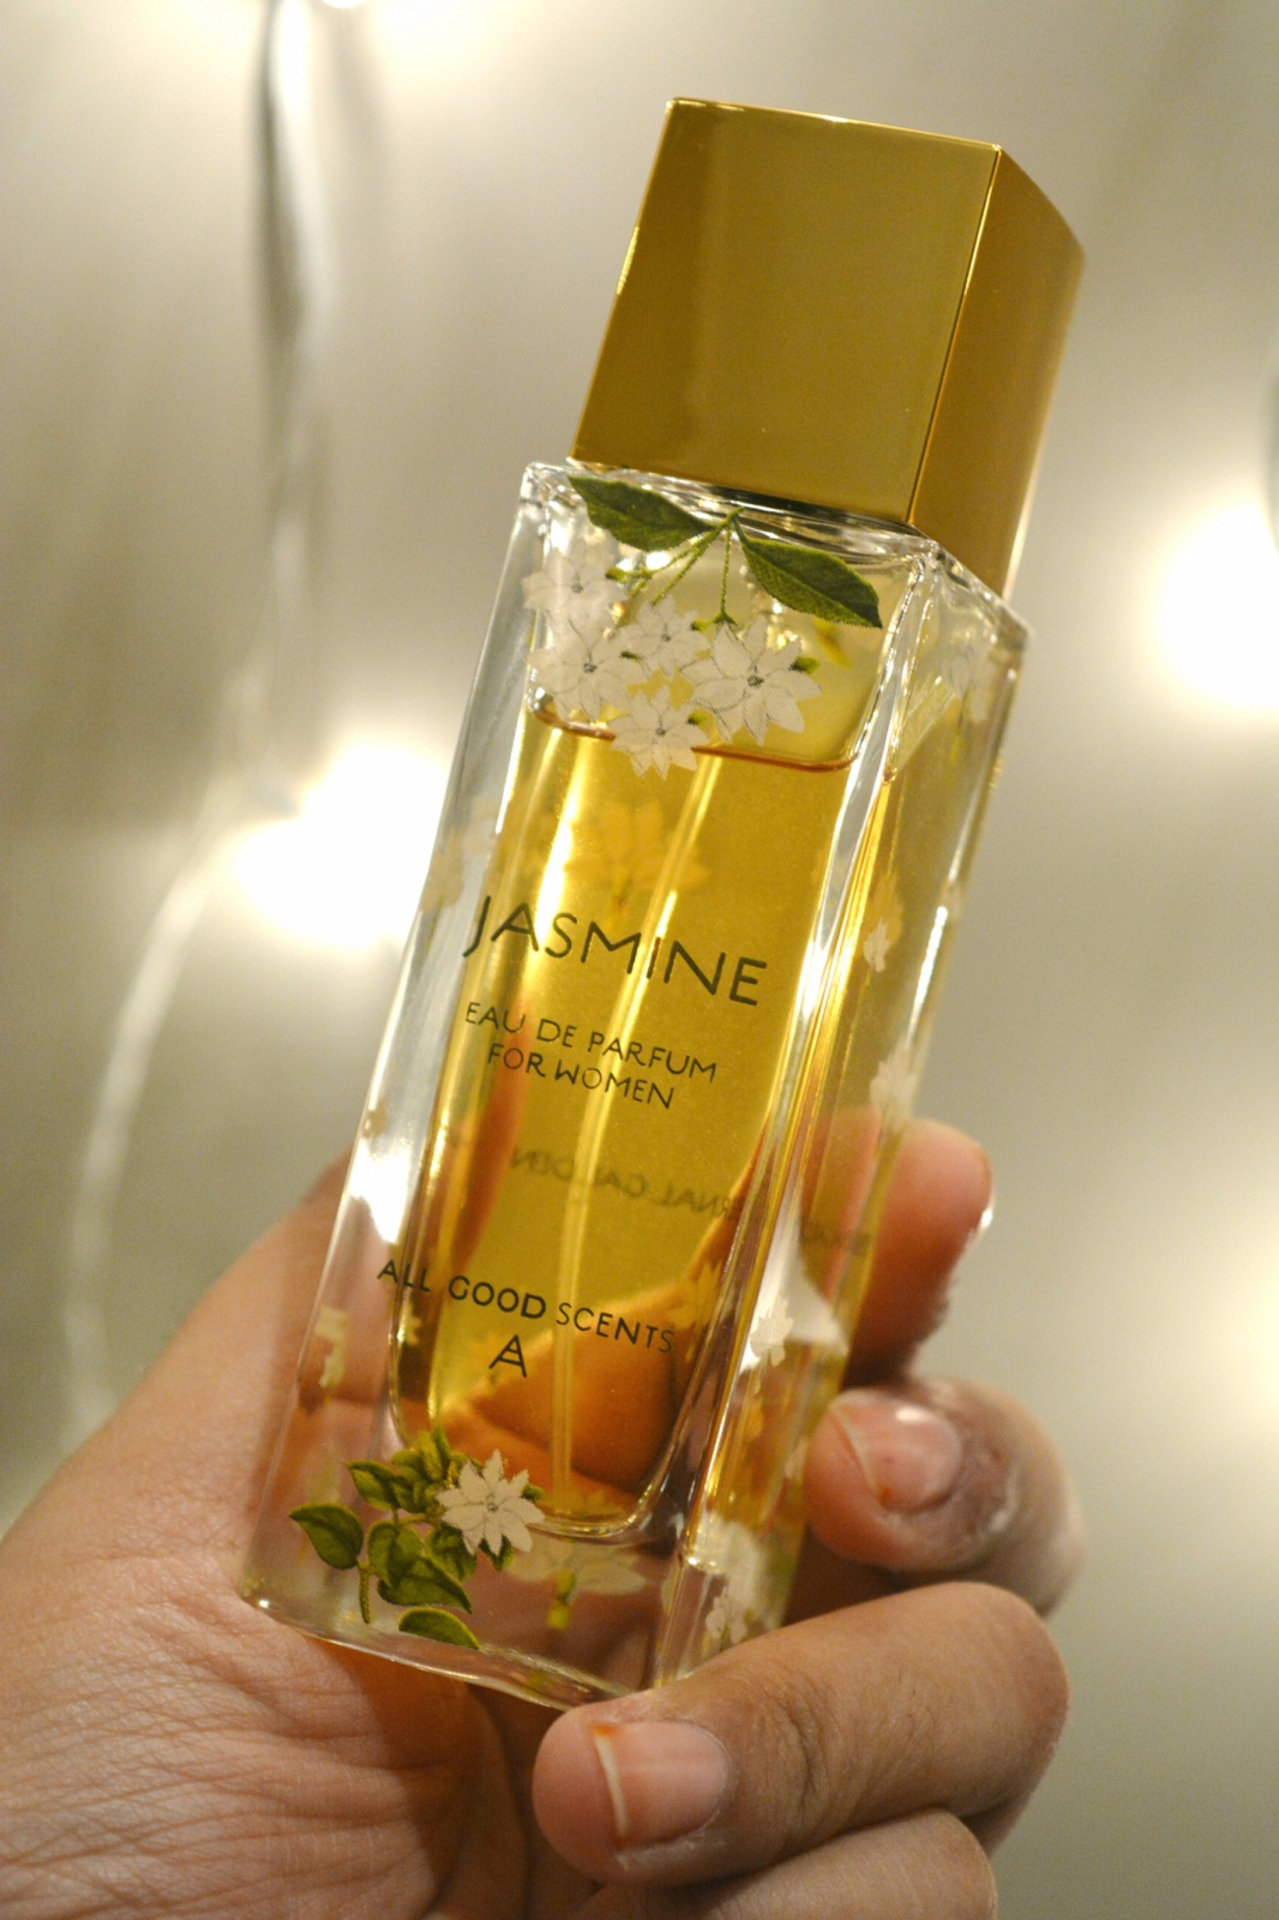 All Good Scents Jasmine Eau de Parfum Review image